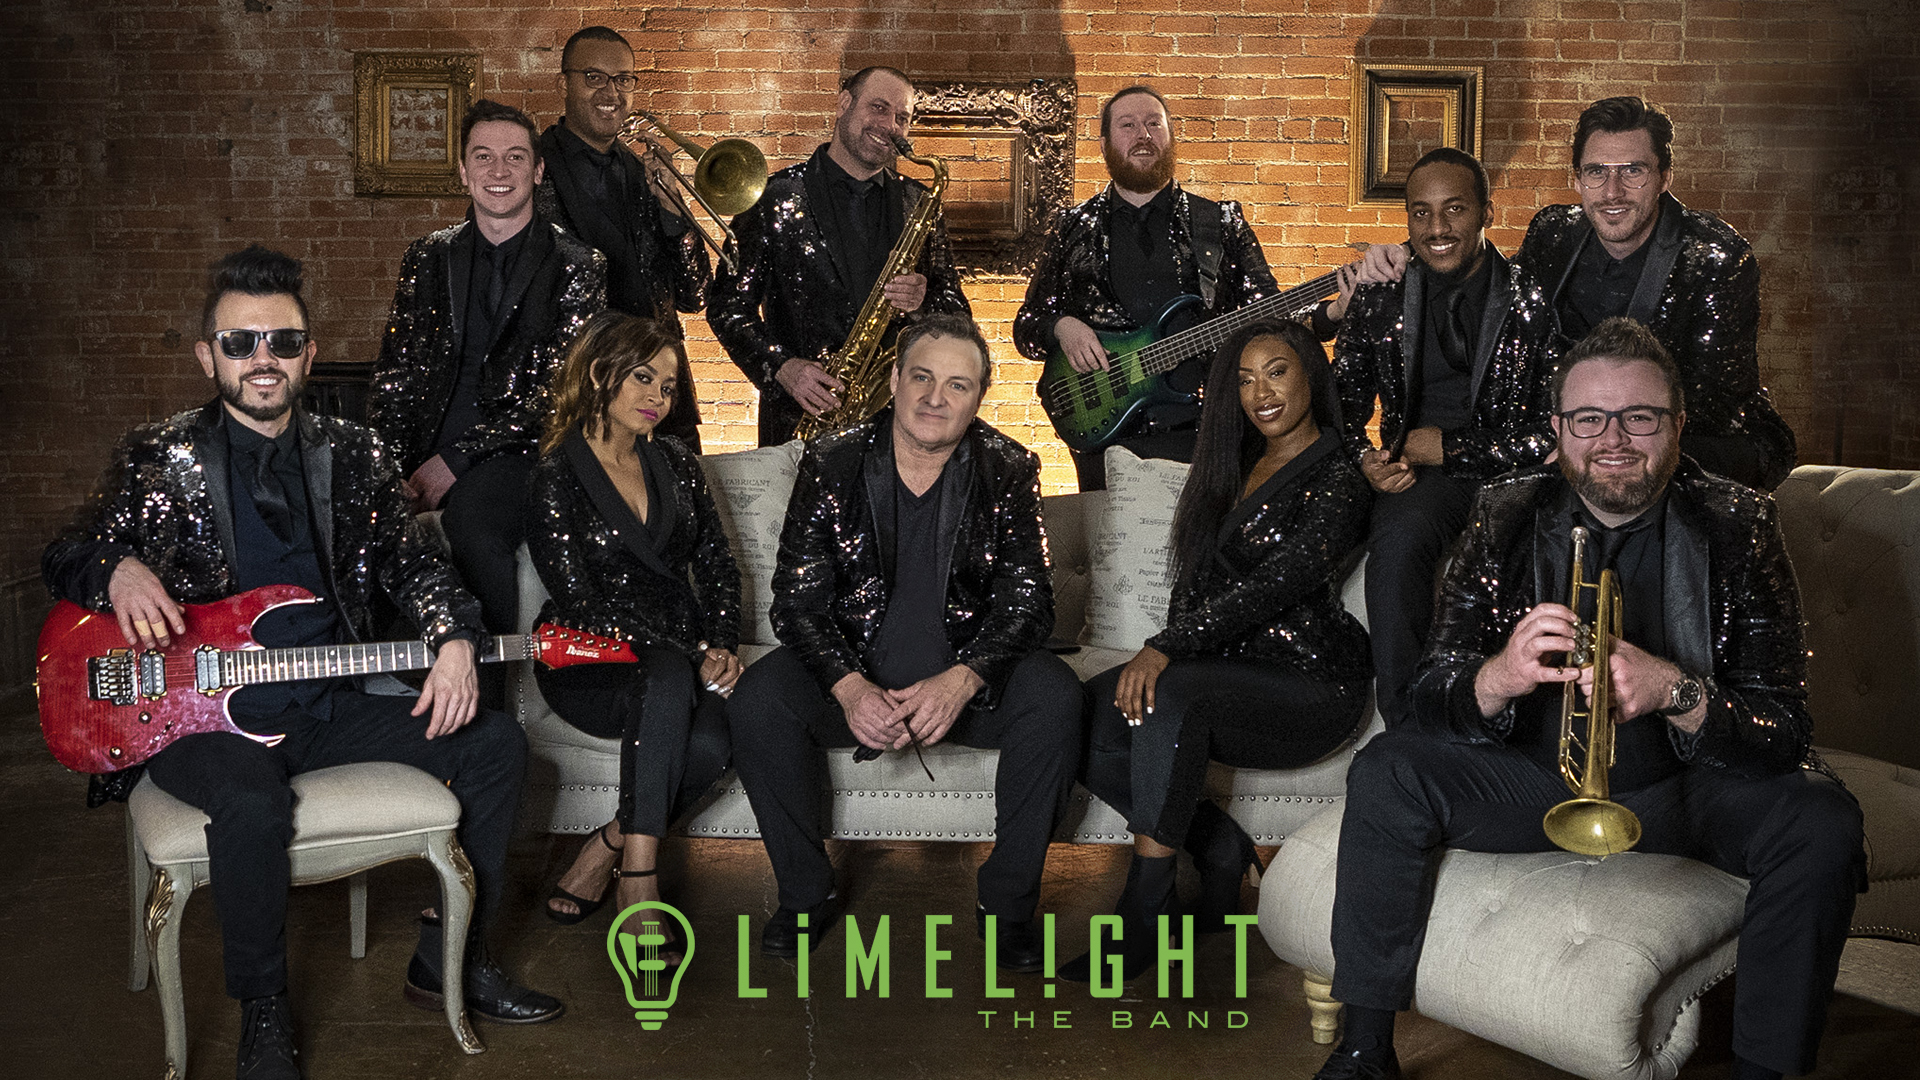 Limelight Band based in Dallas TX - one of the best party bands for weddings and events